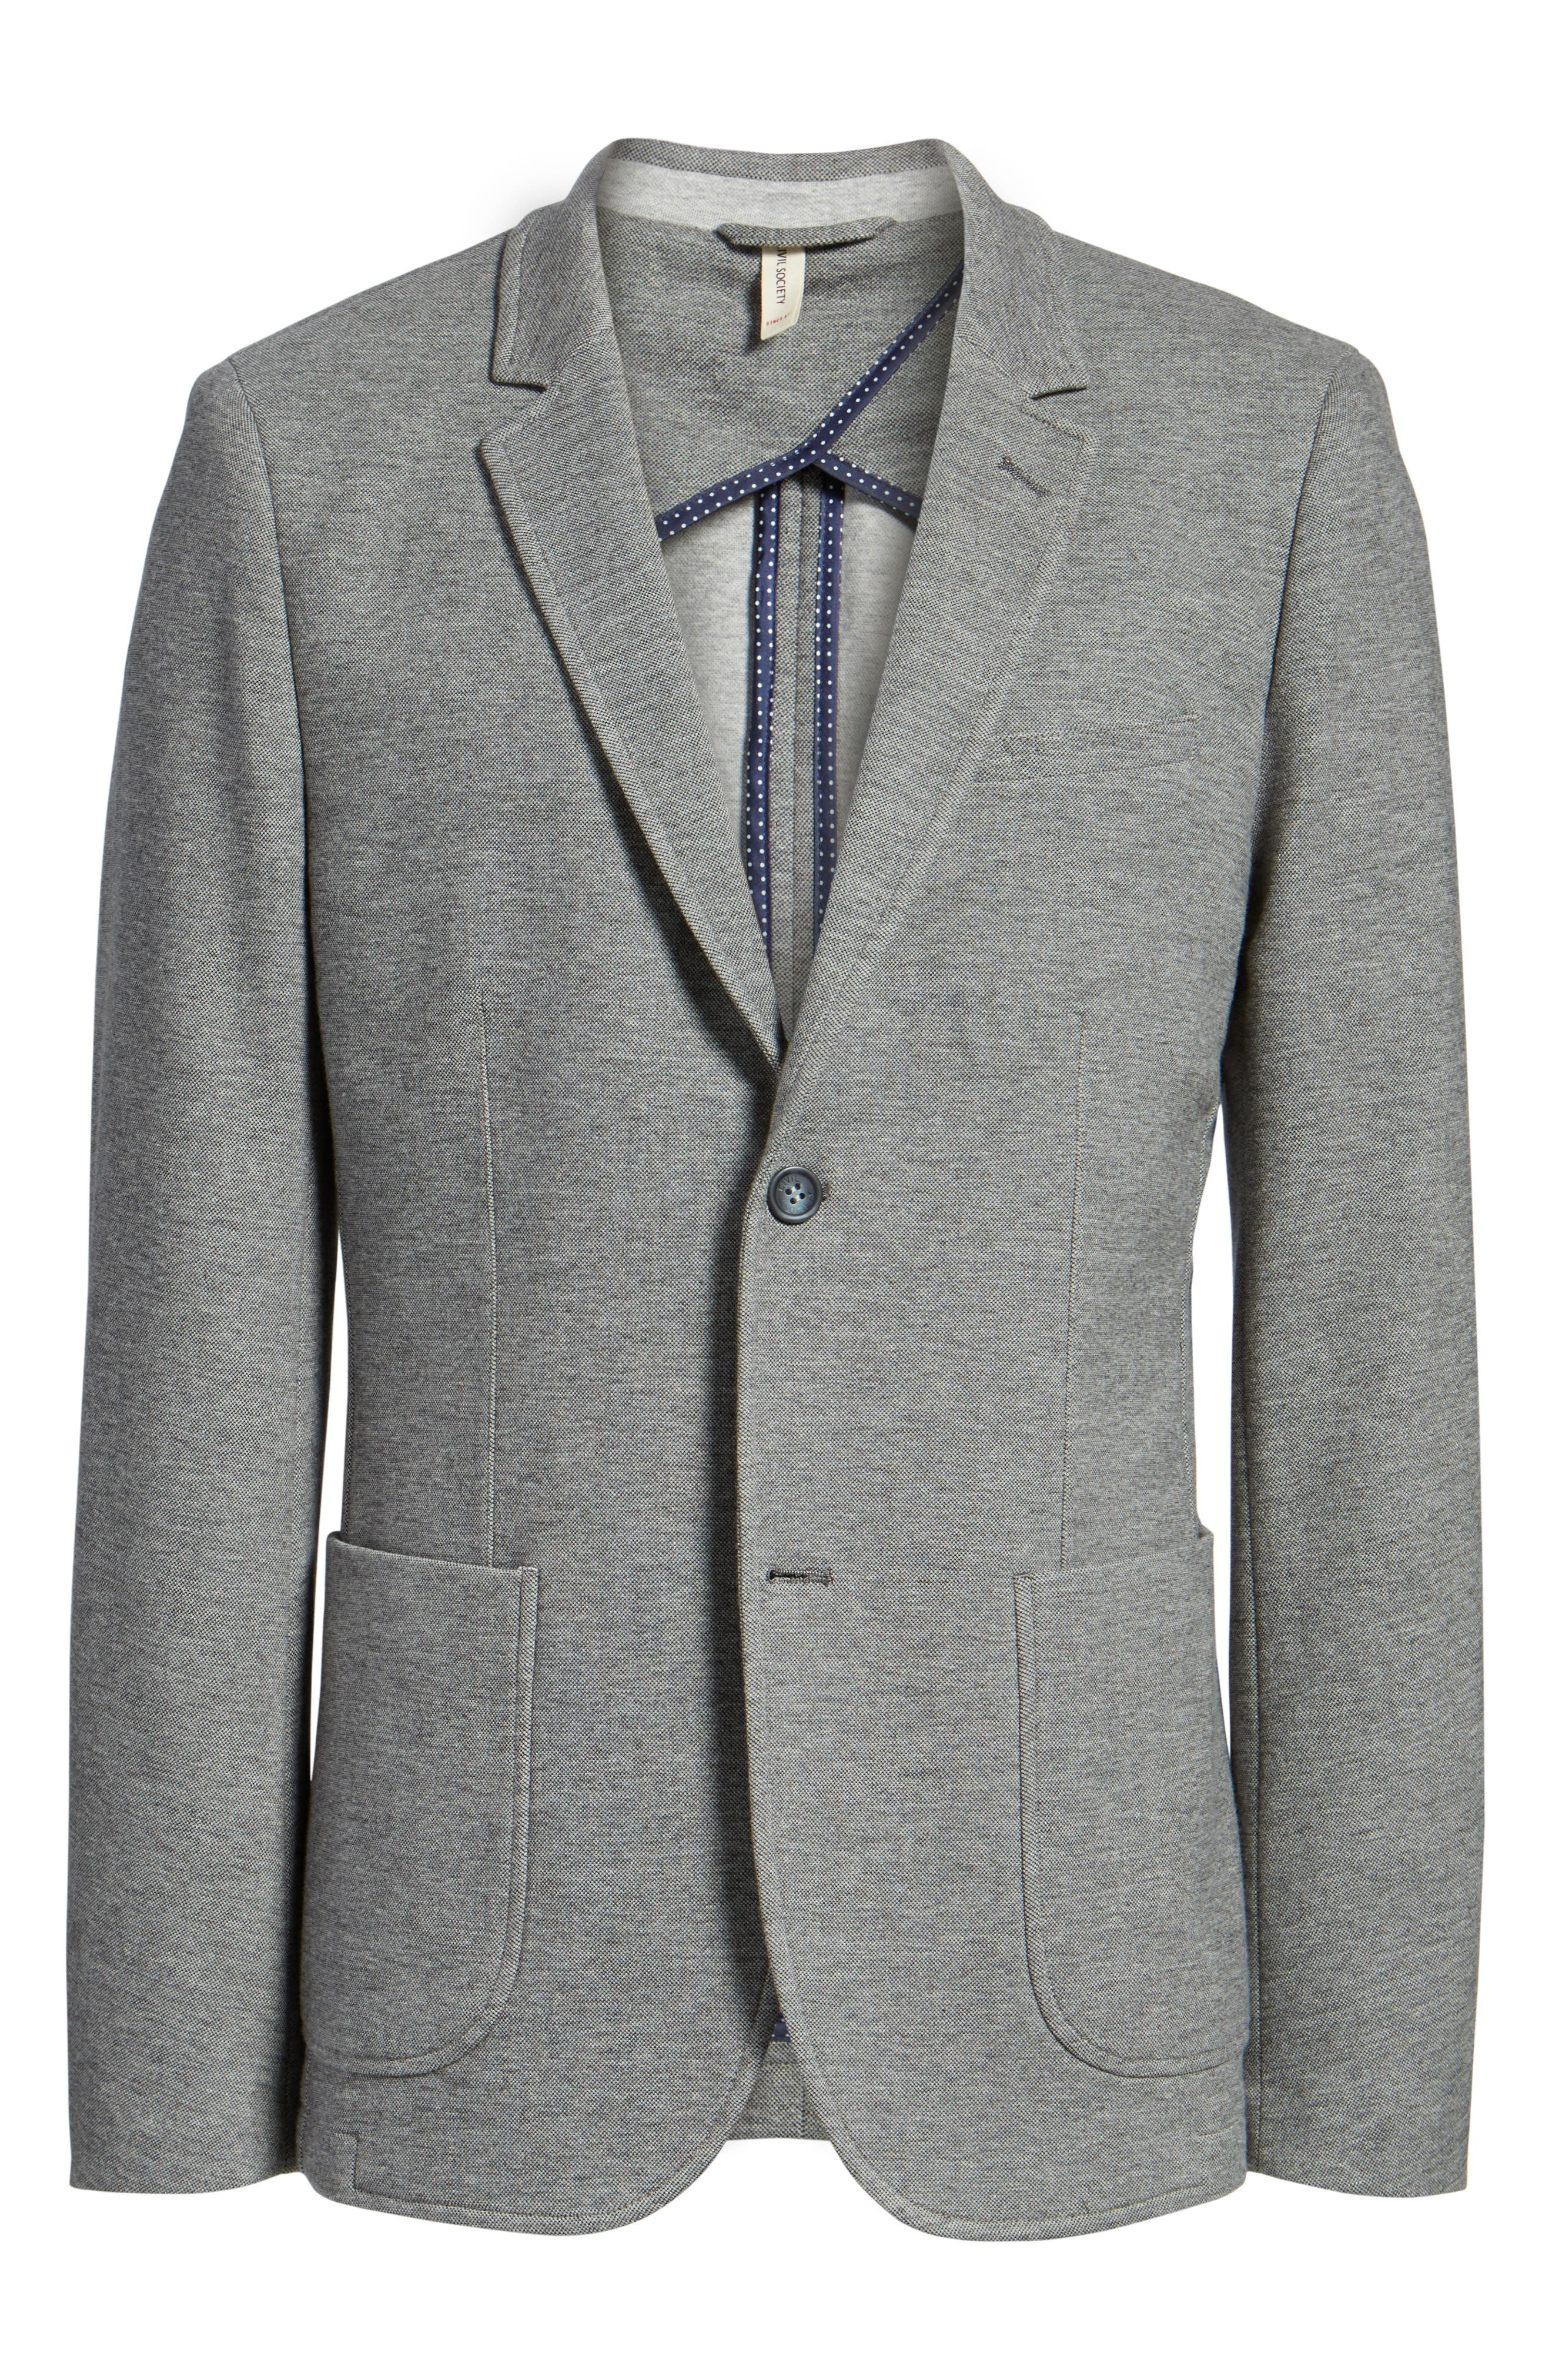 Thompson Knit Blazer,                             Alternate thumbnail 5, color,                             023